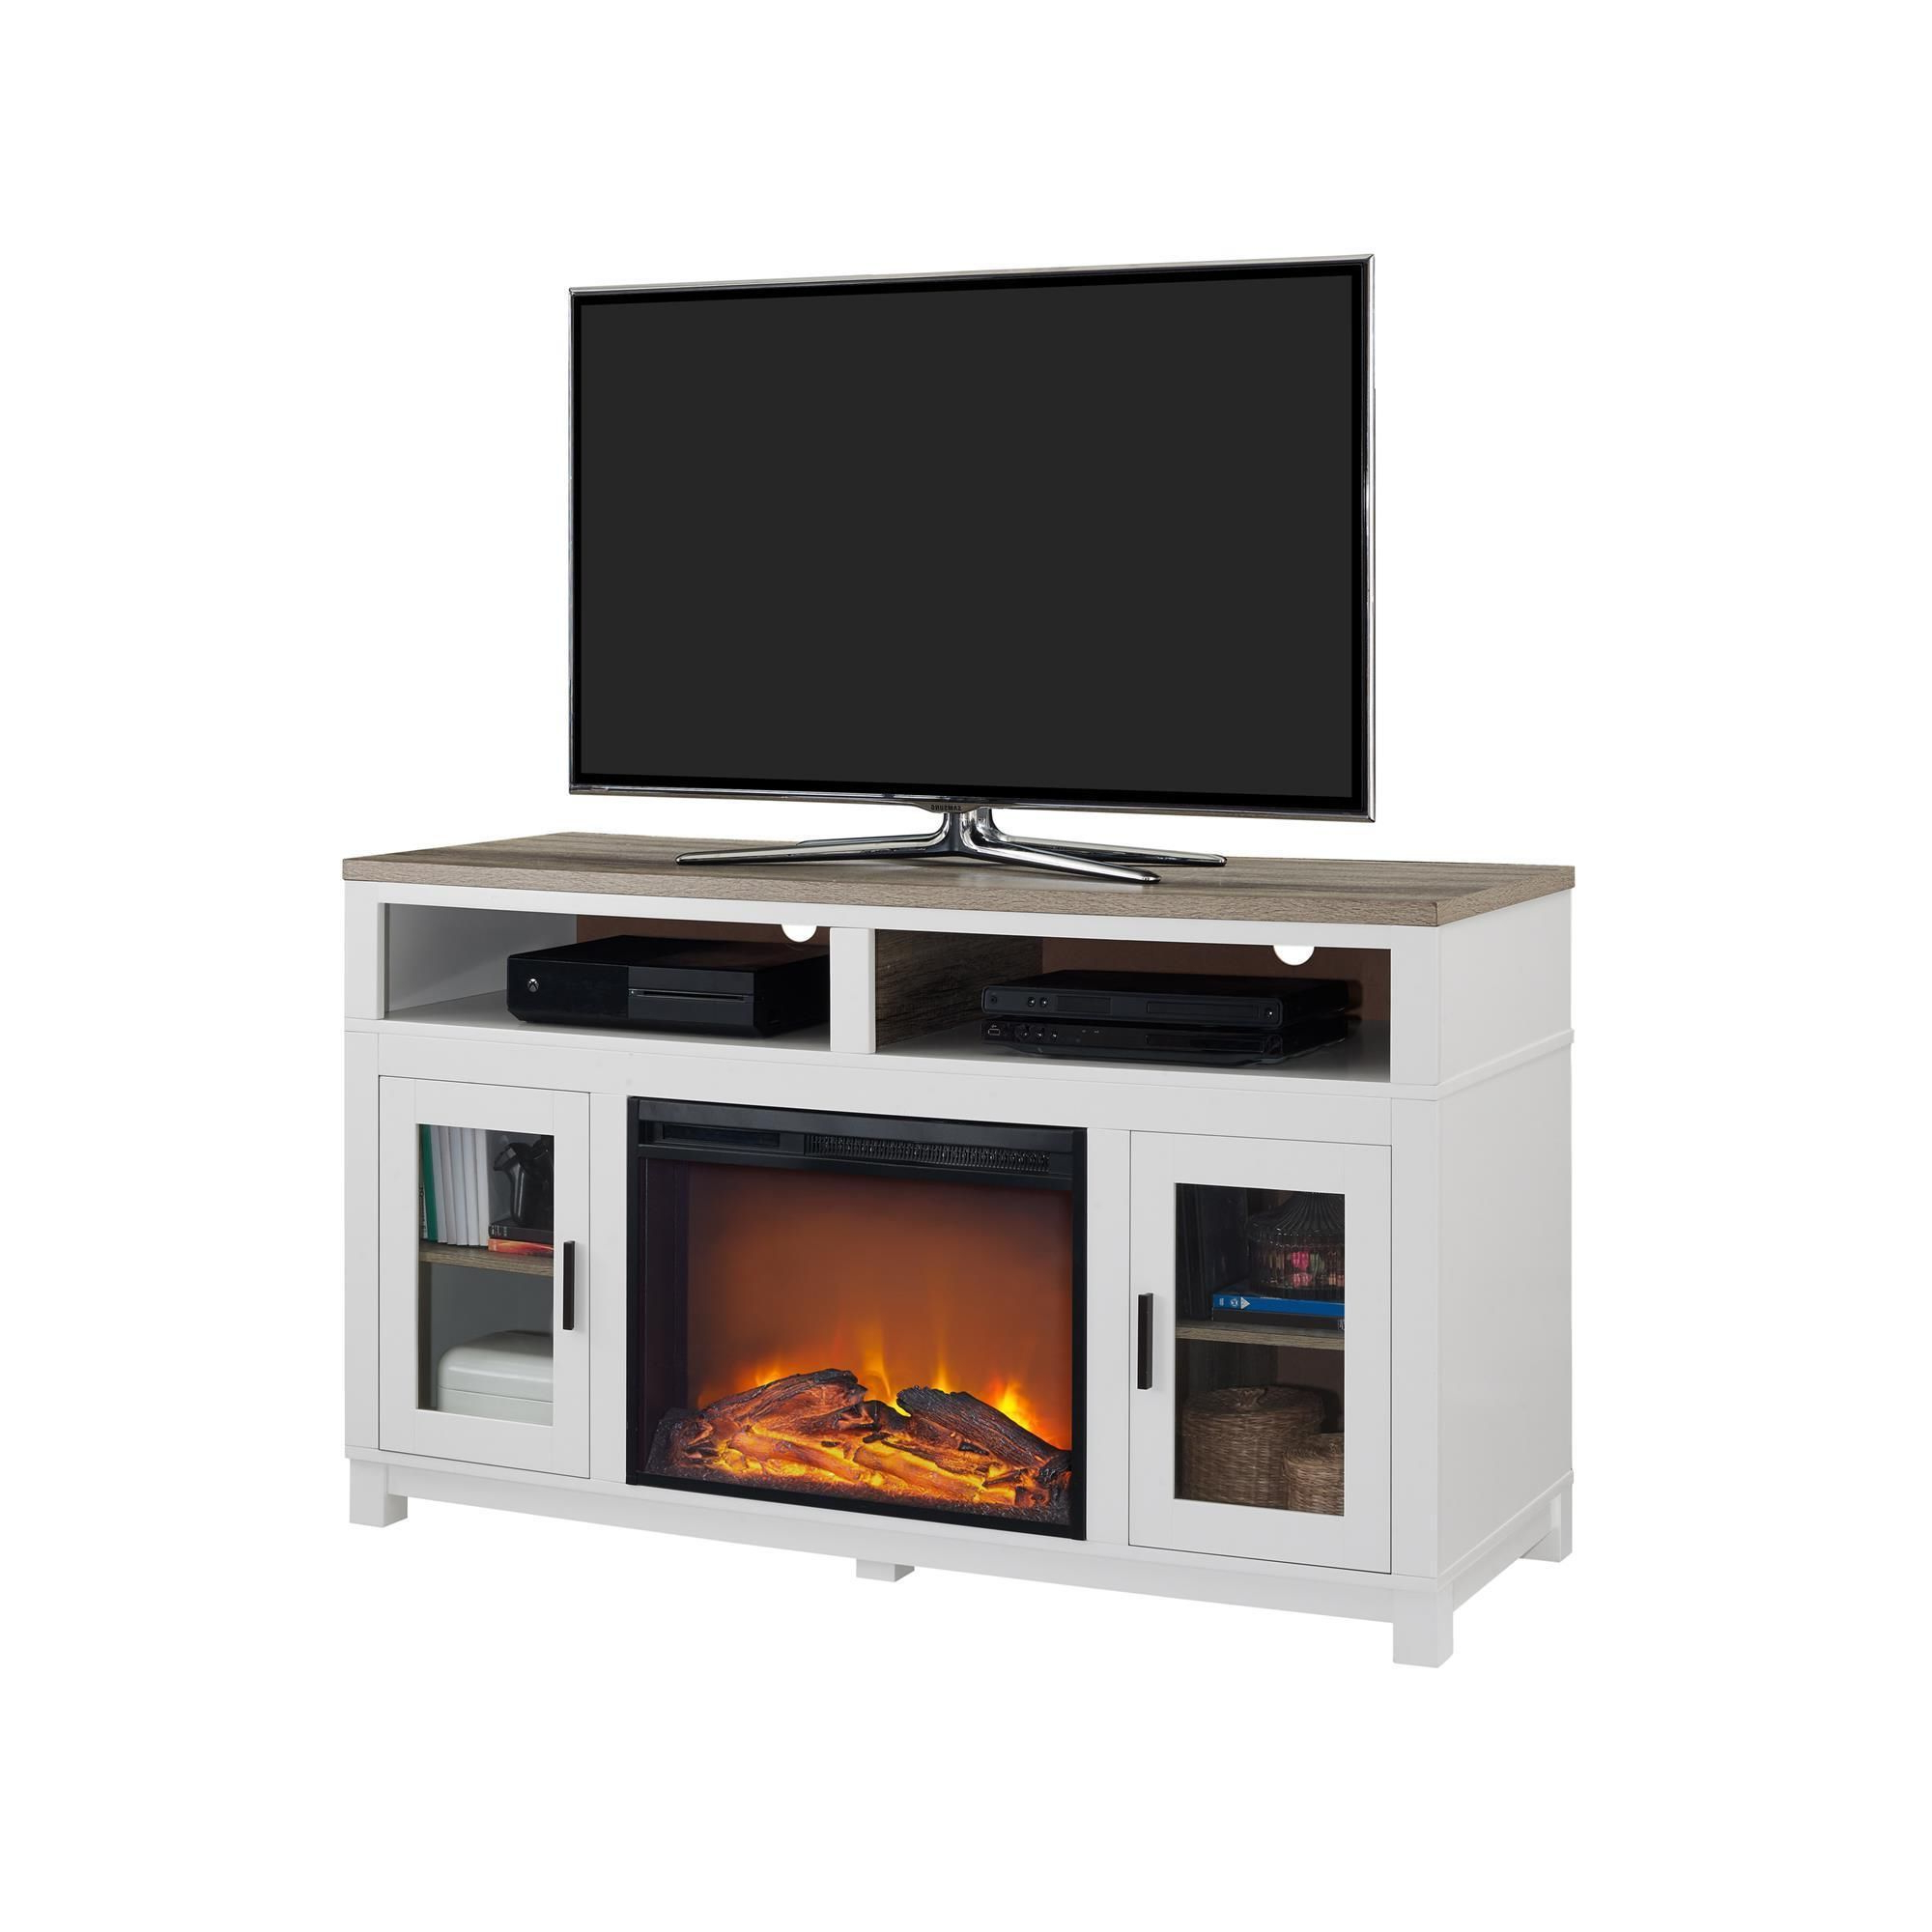 Ameriwood Home Carver Electric Fireplace Tv Stand For Tvs Up To 60 For Oxford 60 Inch Tv Stands (View 2 of 20)